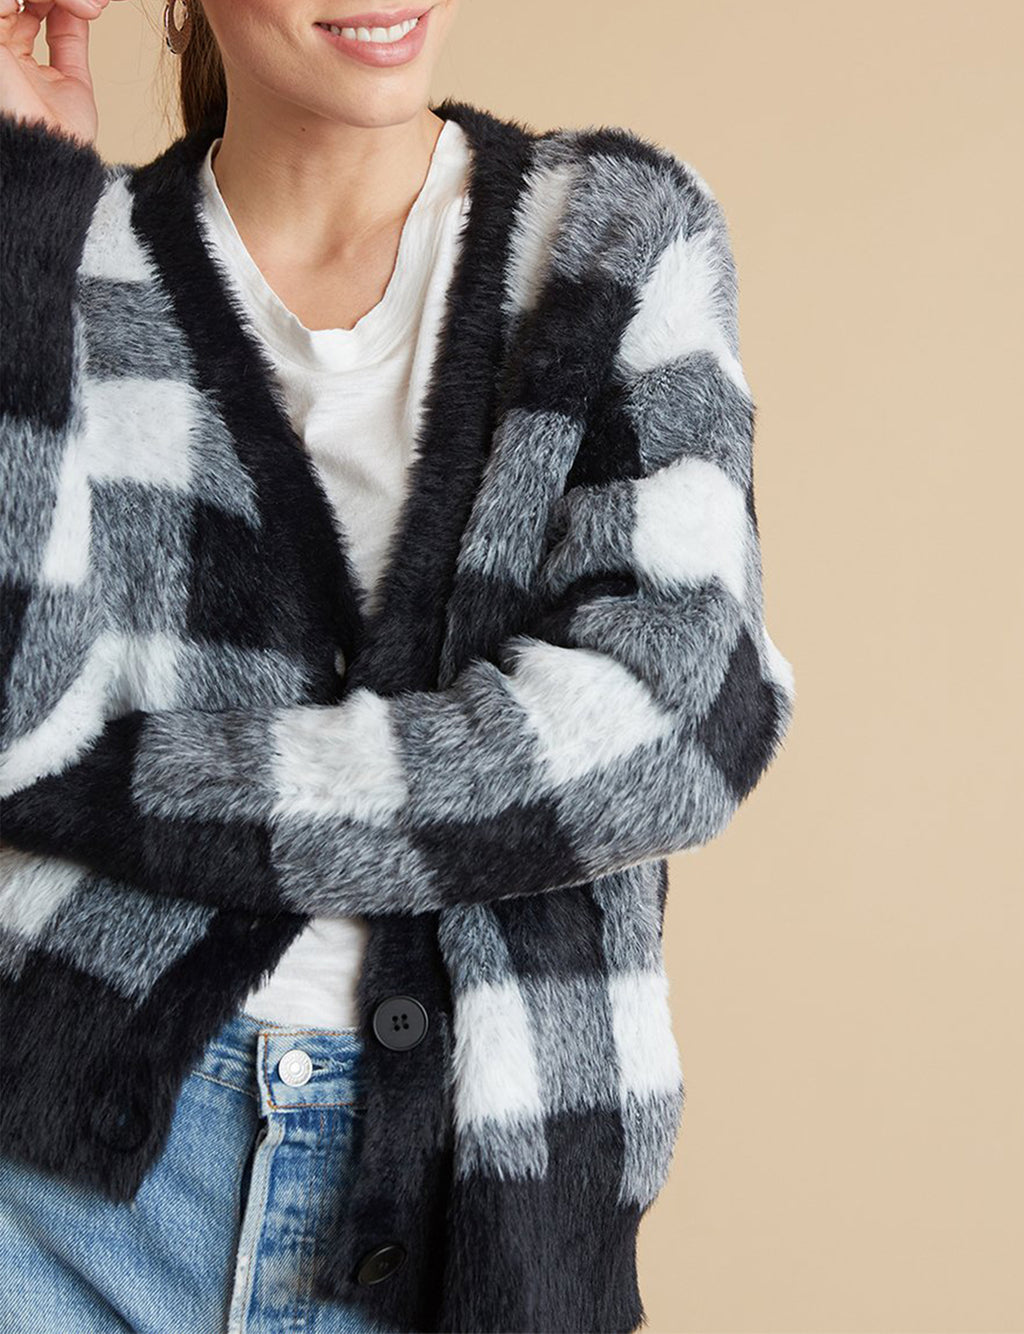 Fuzzy Buffalo Plaid Cardigan in Black/White